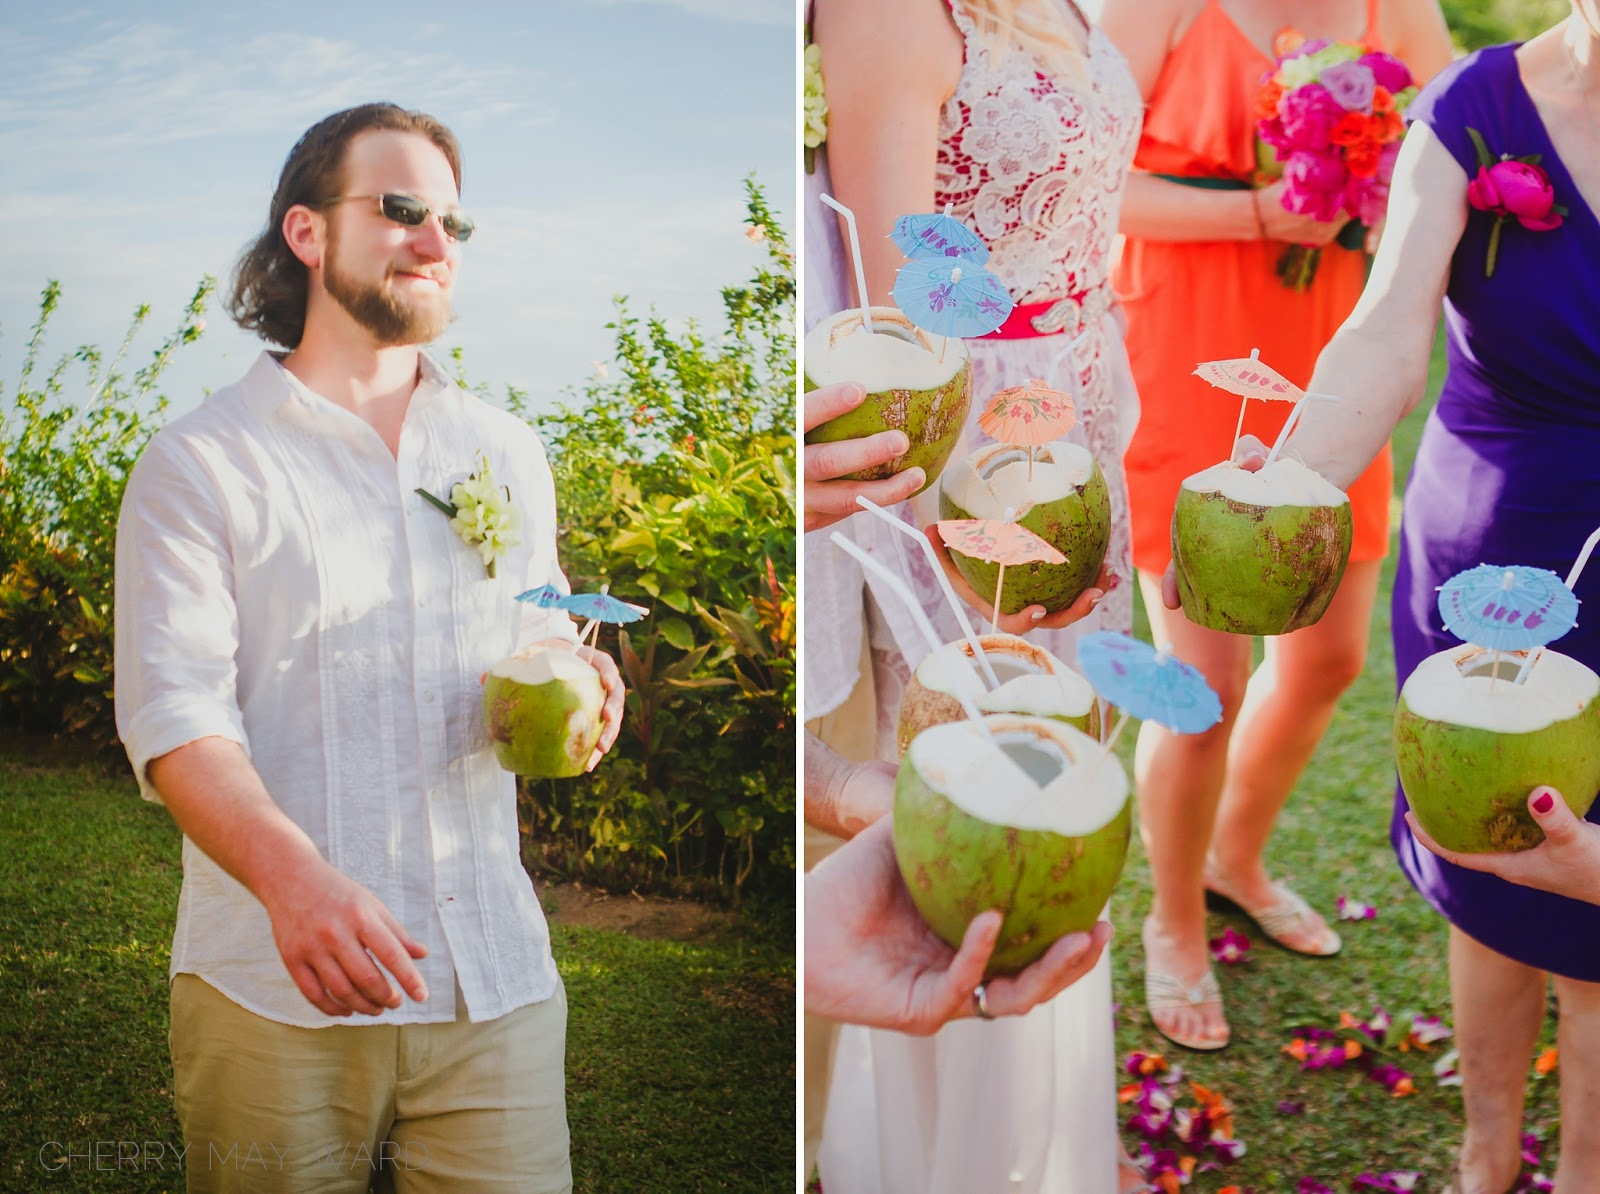 Piña coladas in coconuts, Thai coconuts, cocktails in coconuts, colourful wedding party, colourful destination wedding